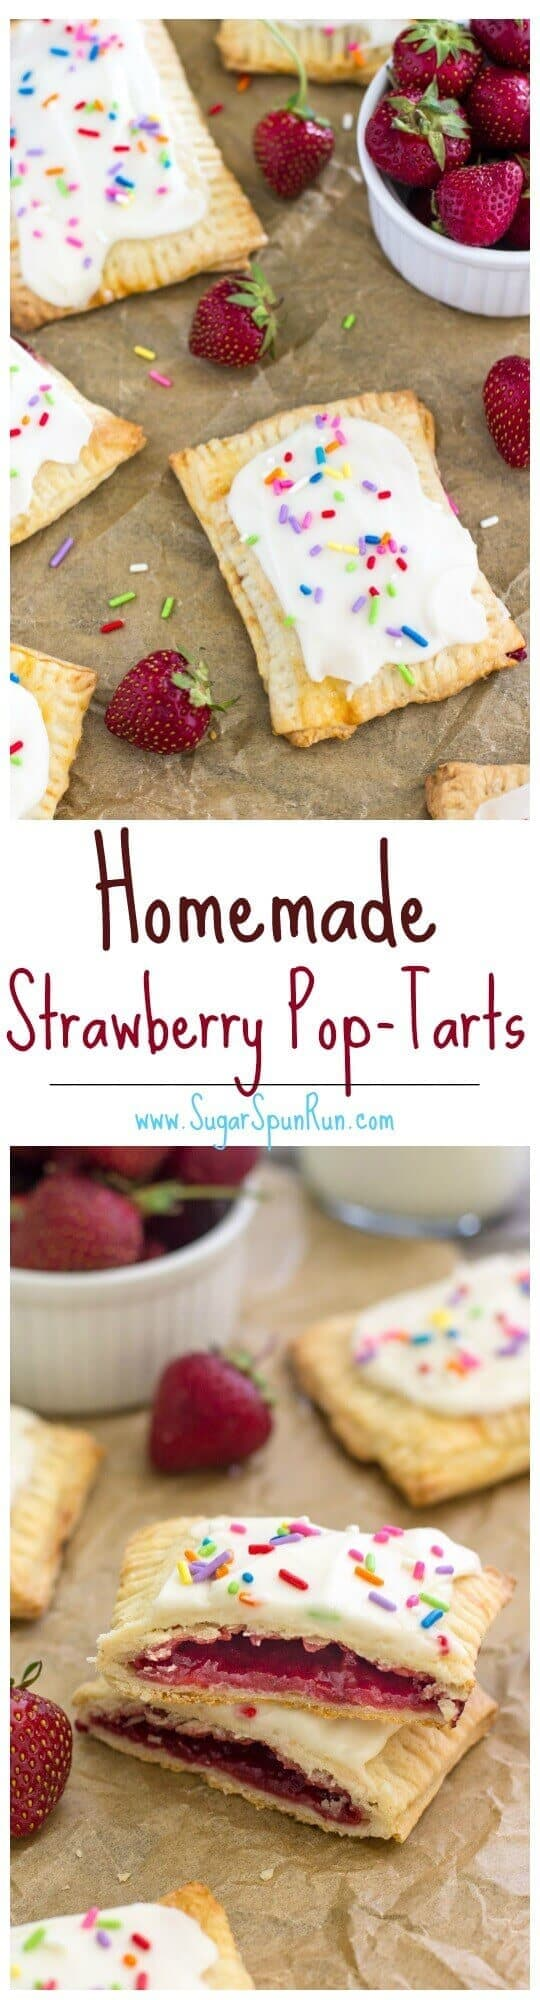 Homemade Strawberry Pop-Tarts - Sugar Spun Run